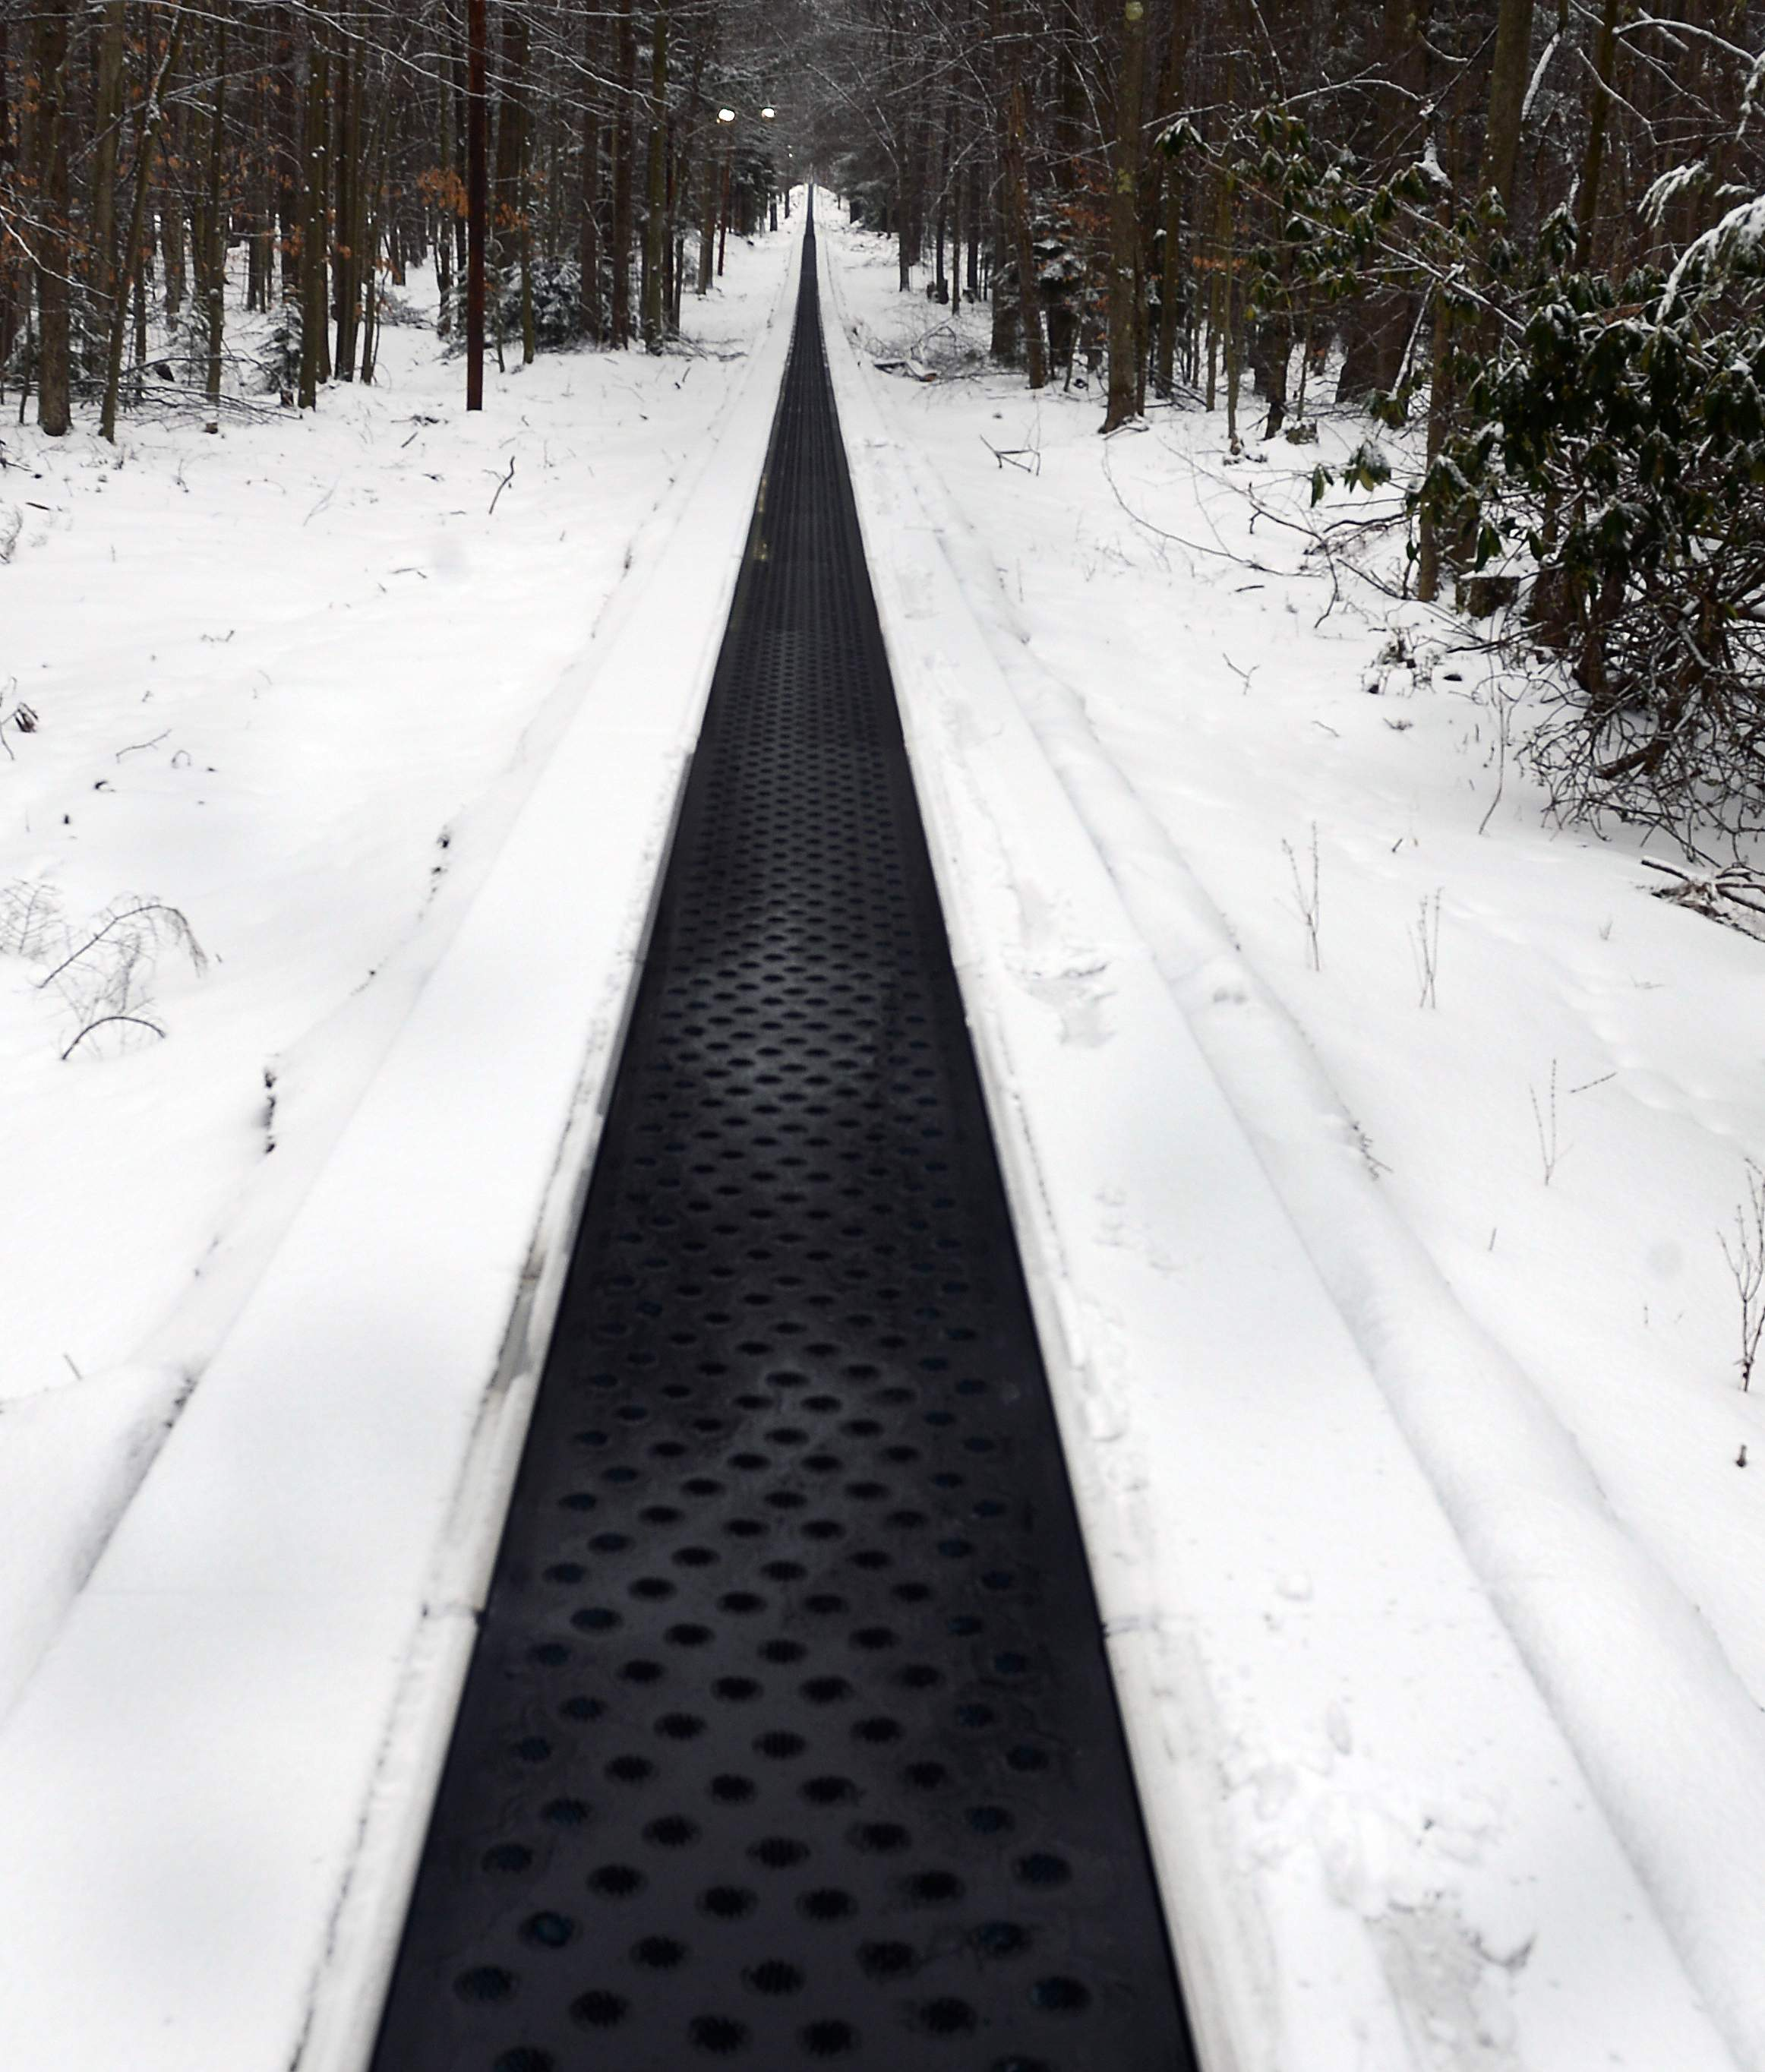 This is some of the 1400 foot long conveyor used to bring people back up the mountain after they sled down. It is possibly the longest conveyor in America today.